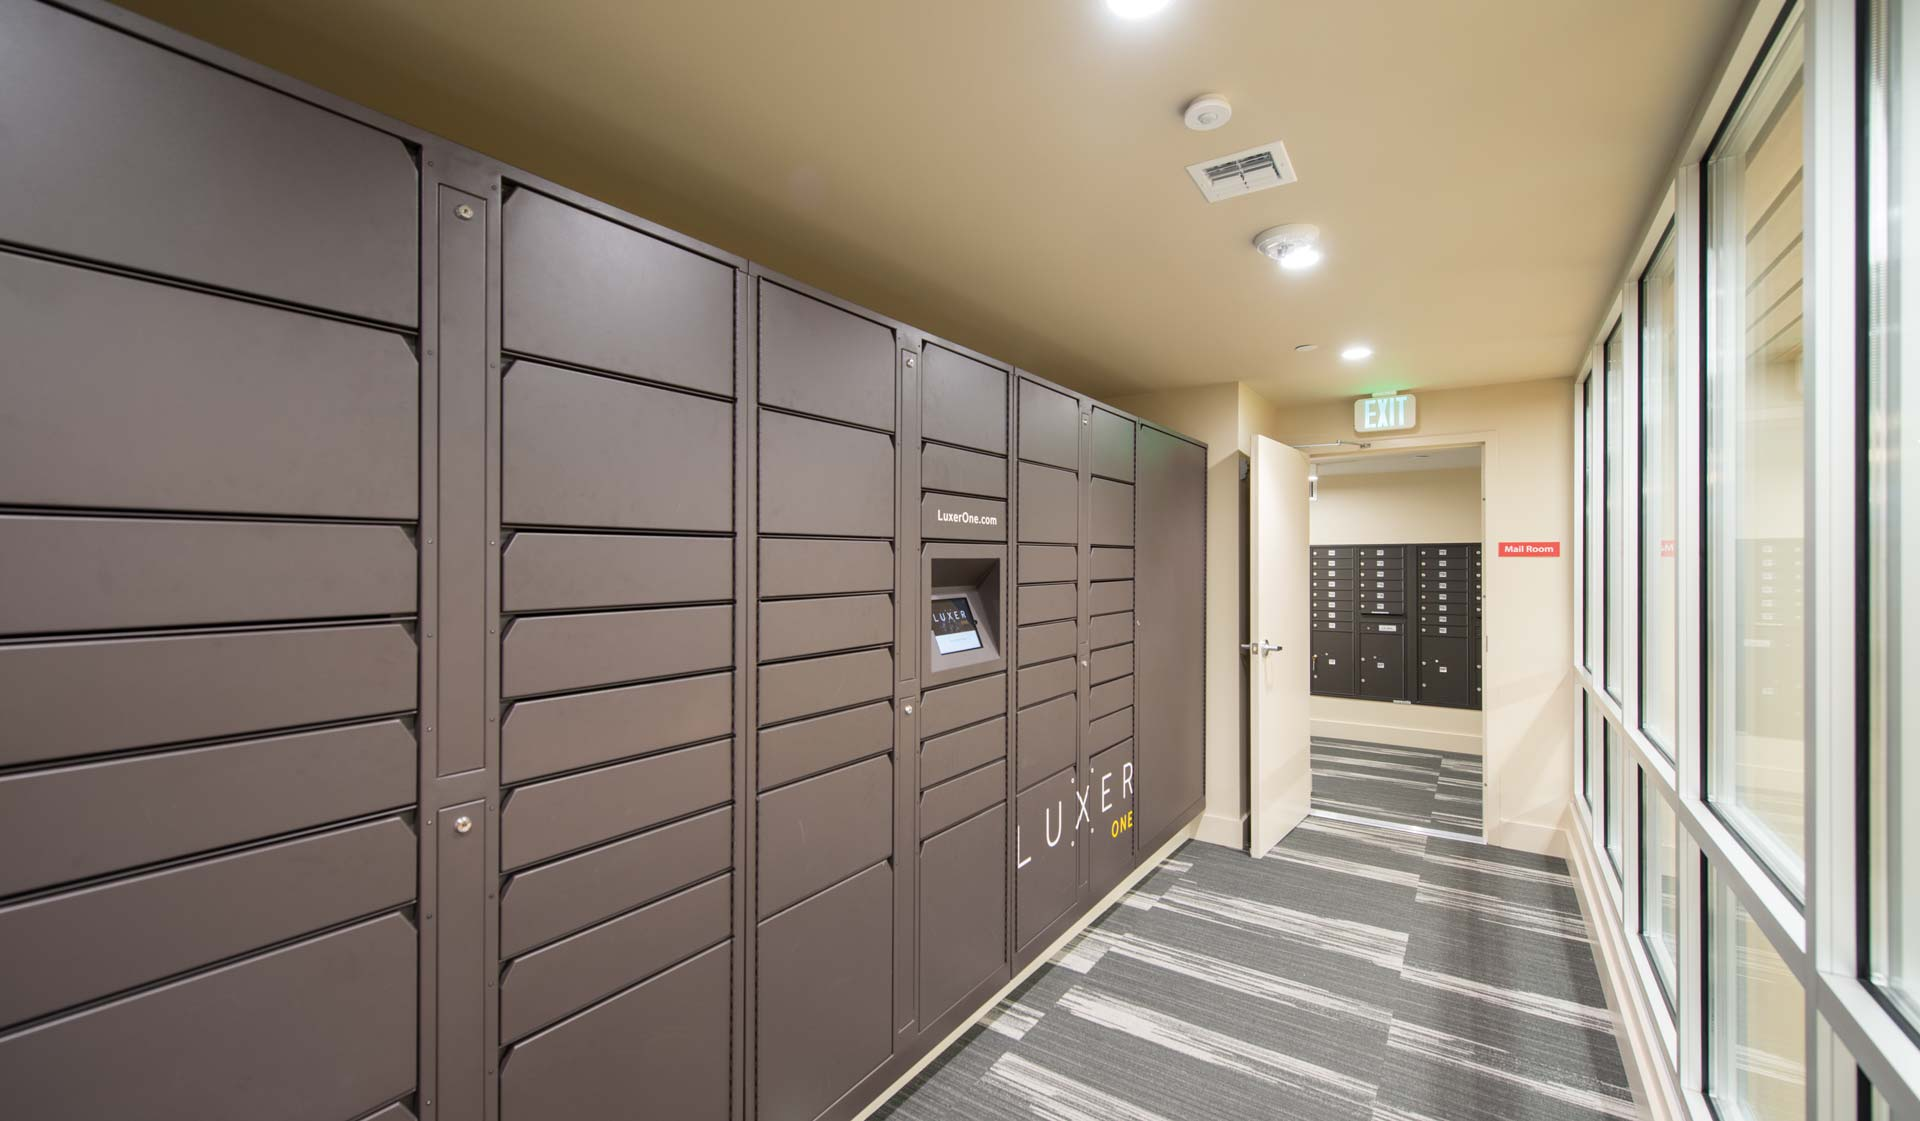 Southstar Lofts - Philadelphia Apartments - lockers